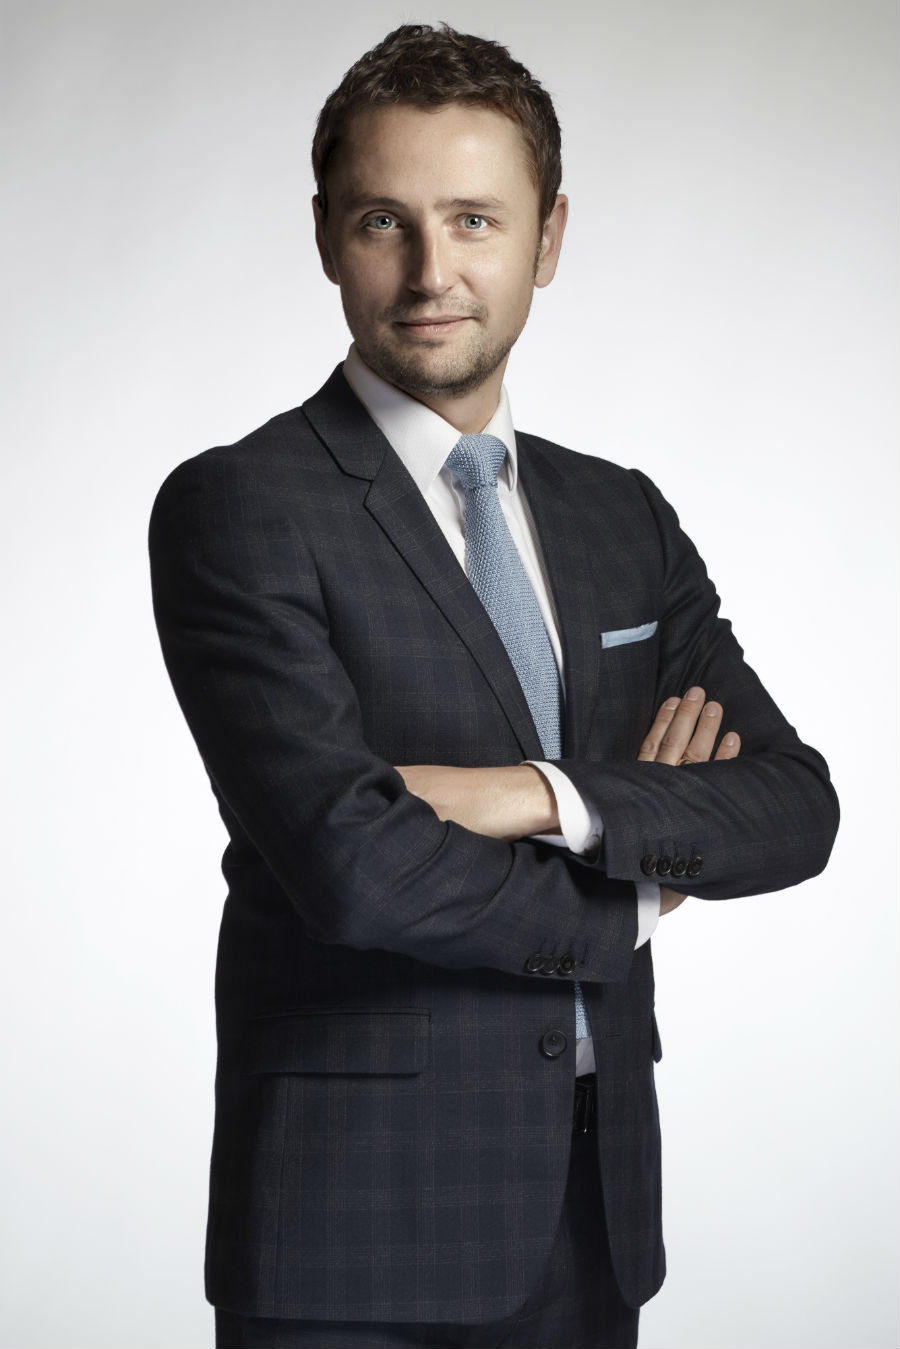 Alta Orologeria Vacheron Constantin - SIHH 2018: Laurent Perves, Chief Marketing Officer di Vacheron Constantin